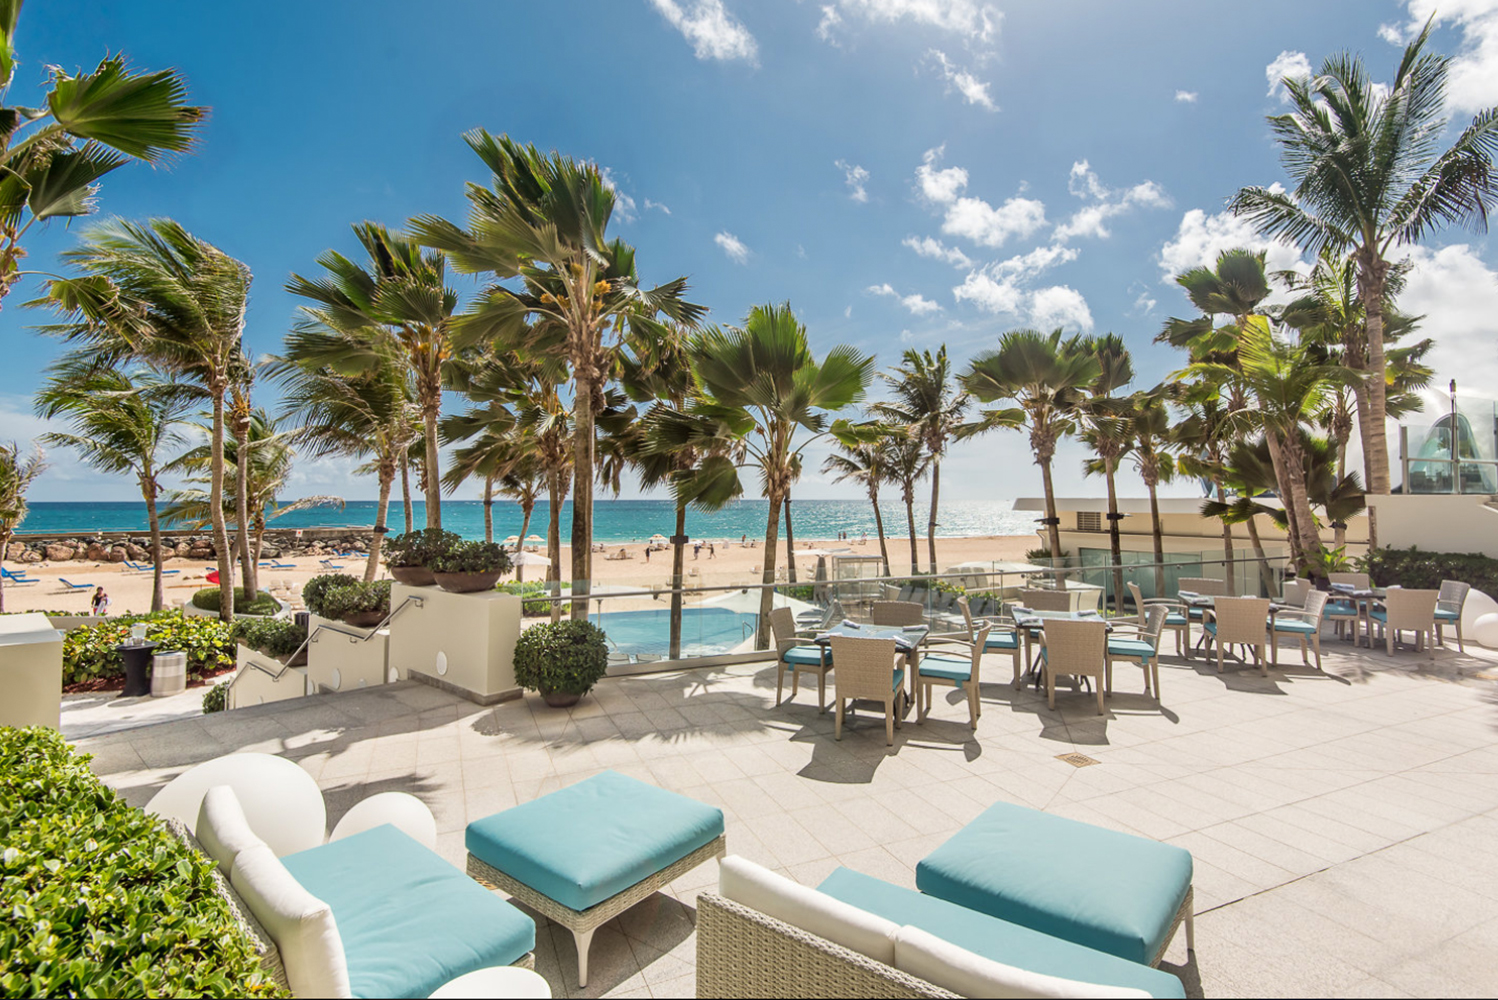 The property also has a brand-new adults-only pool and oceanfront cabanas.